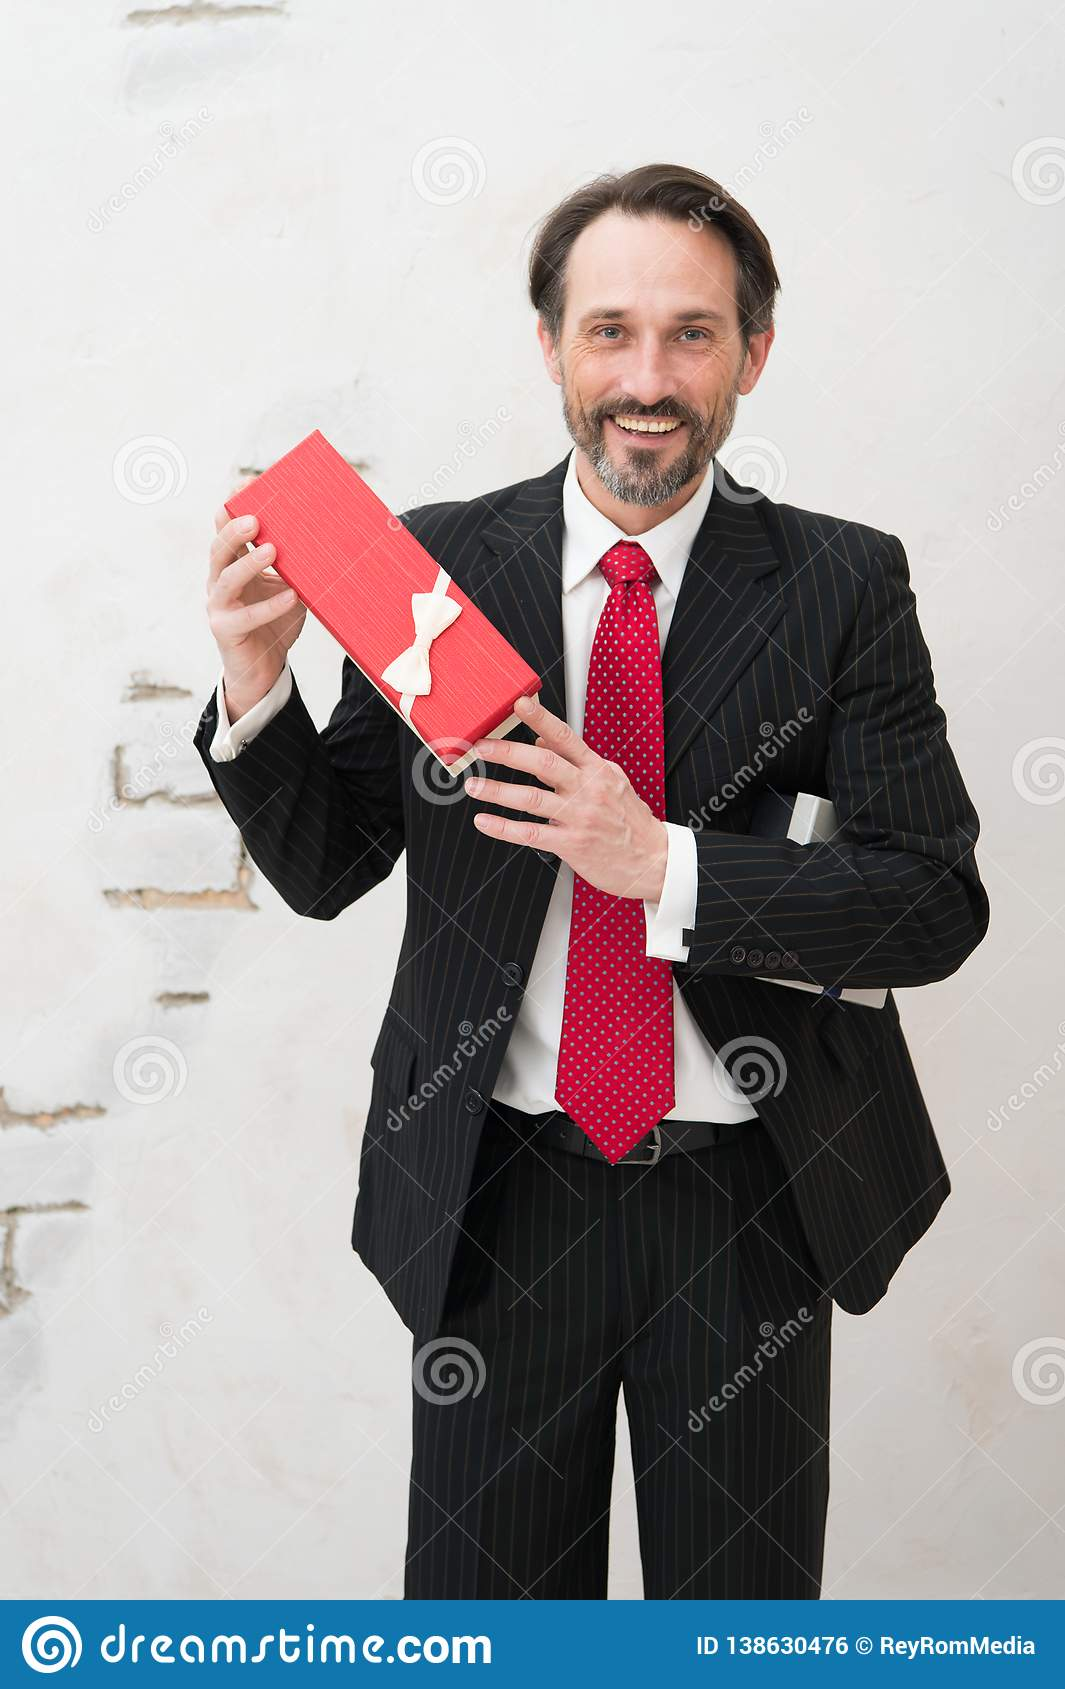 Lighthearted charismatic businessman holding a present in red box